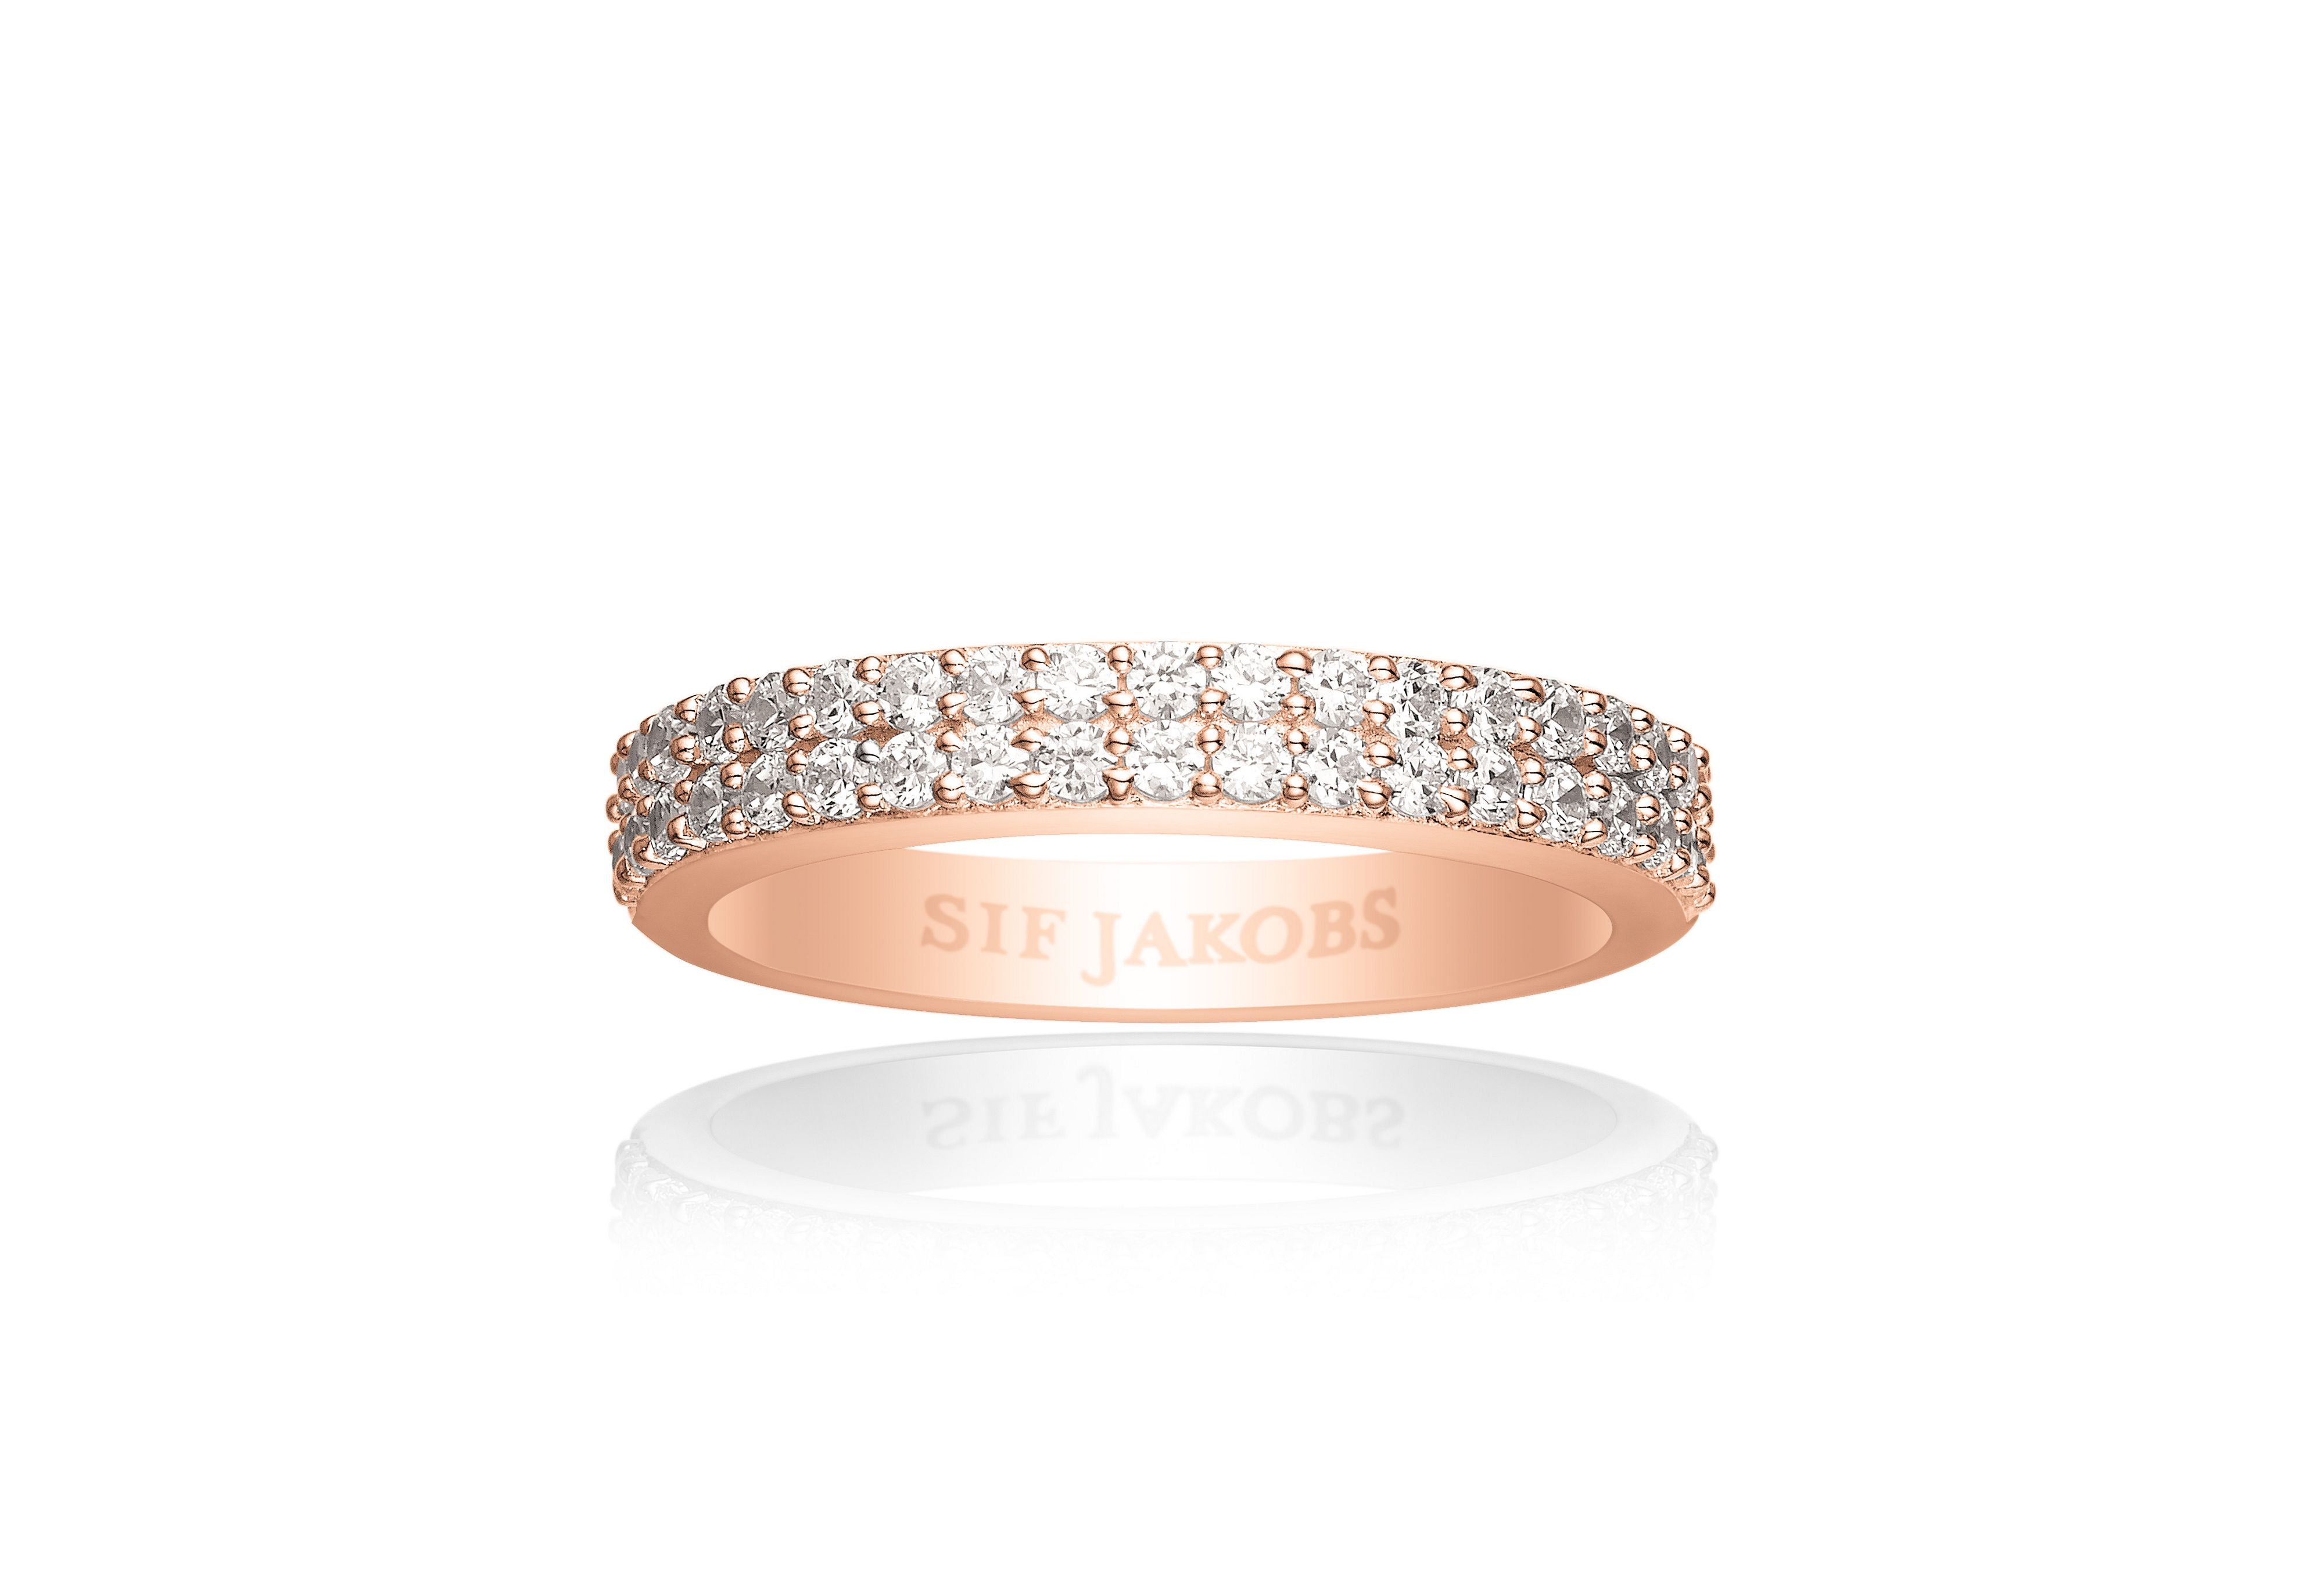 Sif Jakobs Sif Jakobs Corte due ring, Rose Gold